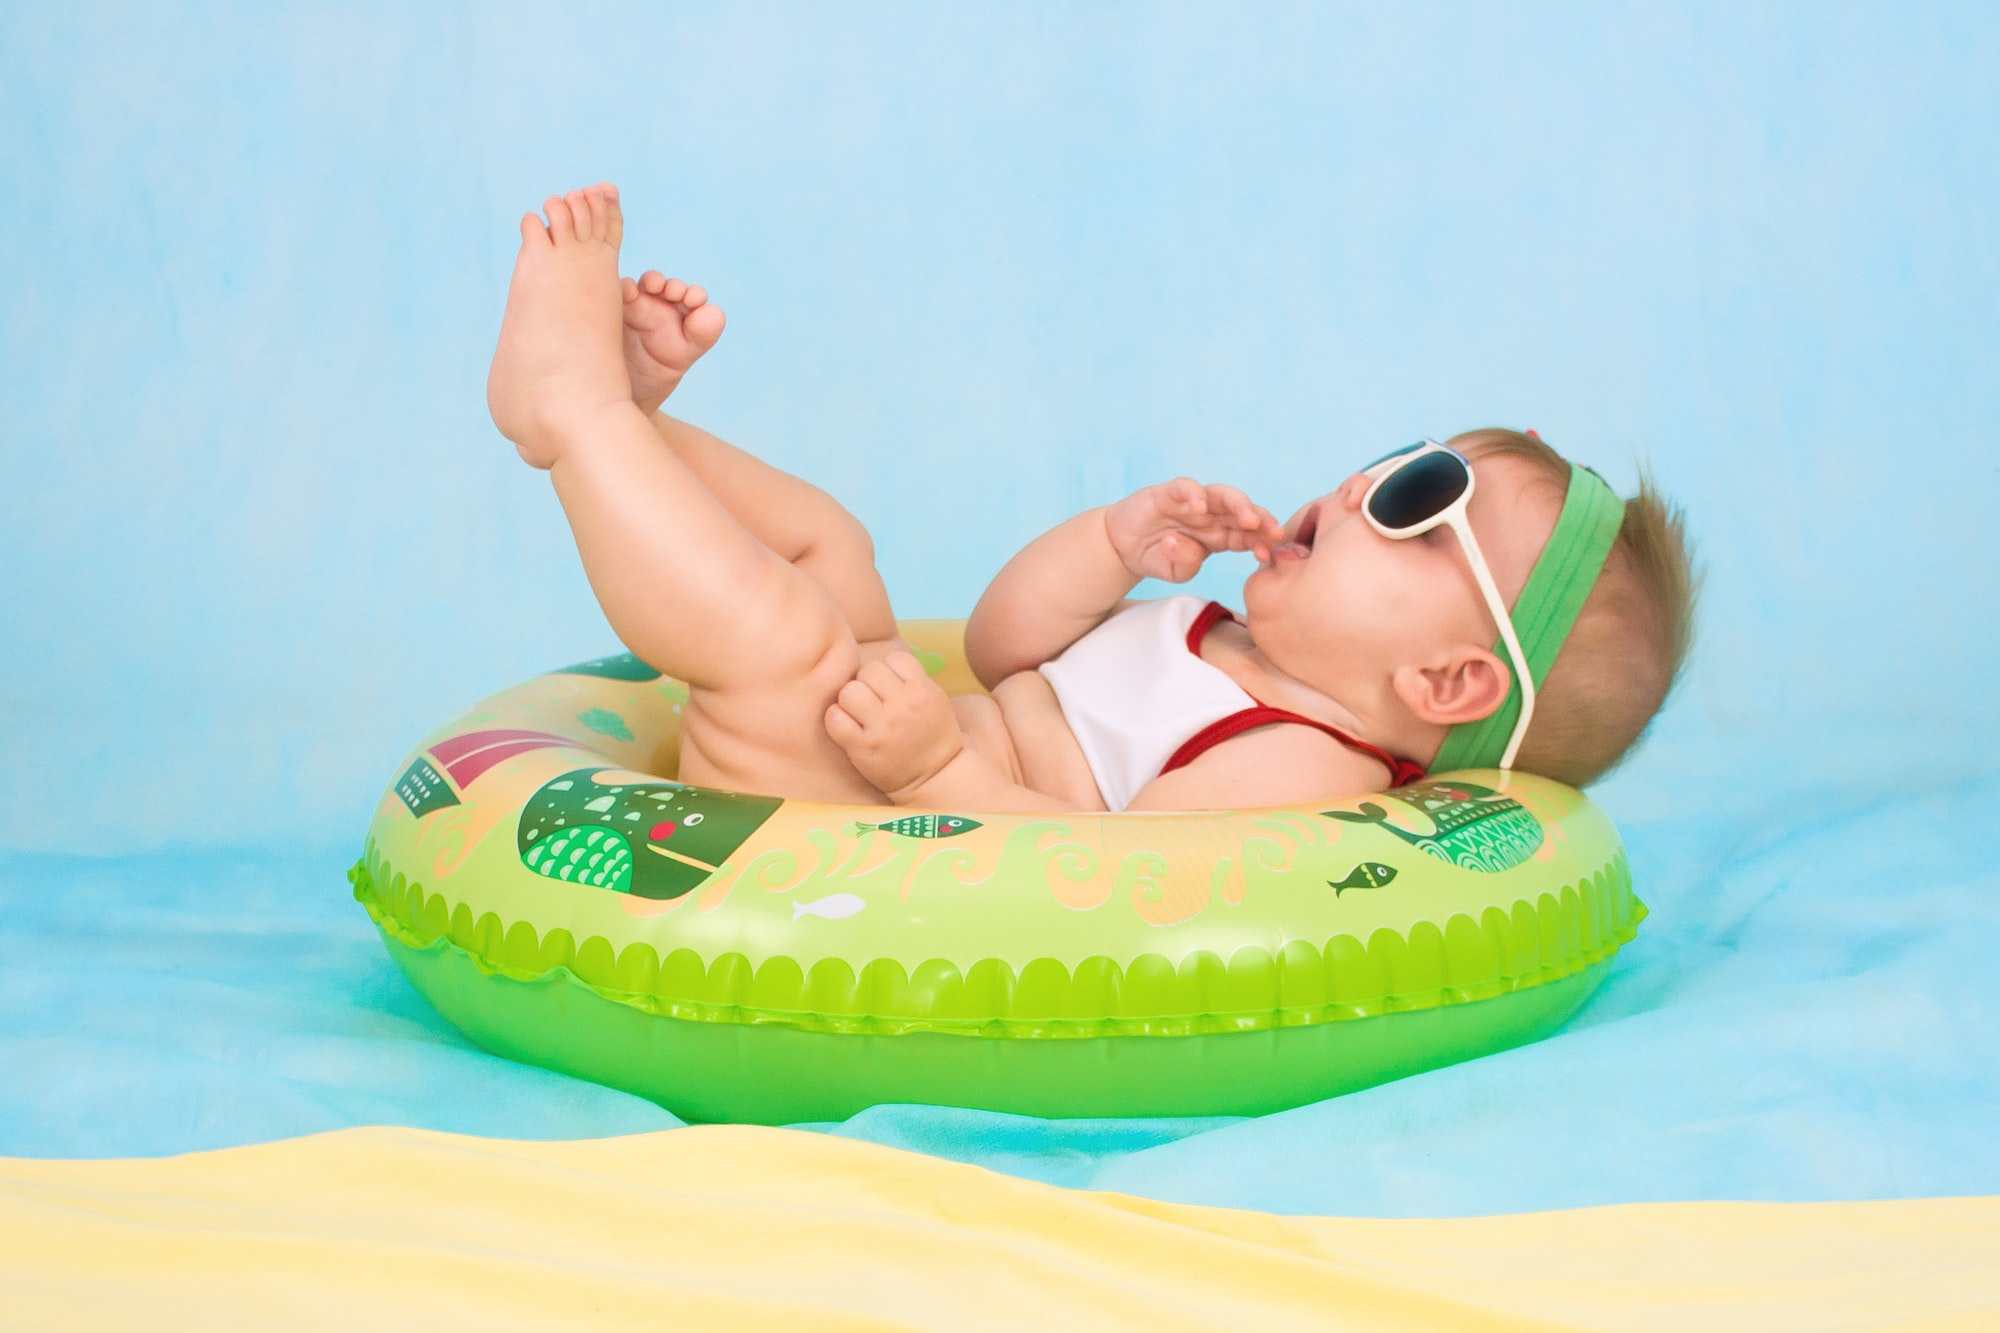 Top 10 Best Activity Centers For Babies to Buy in 2020